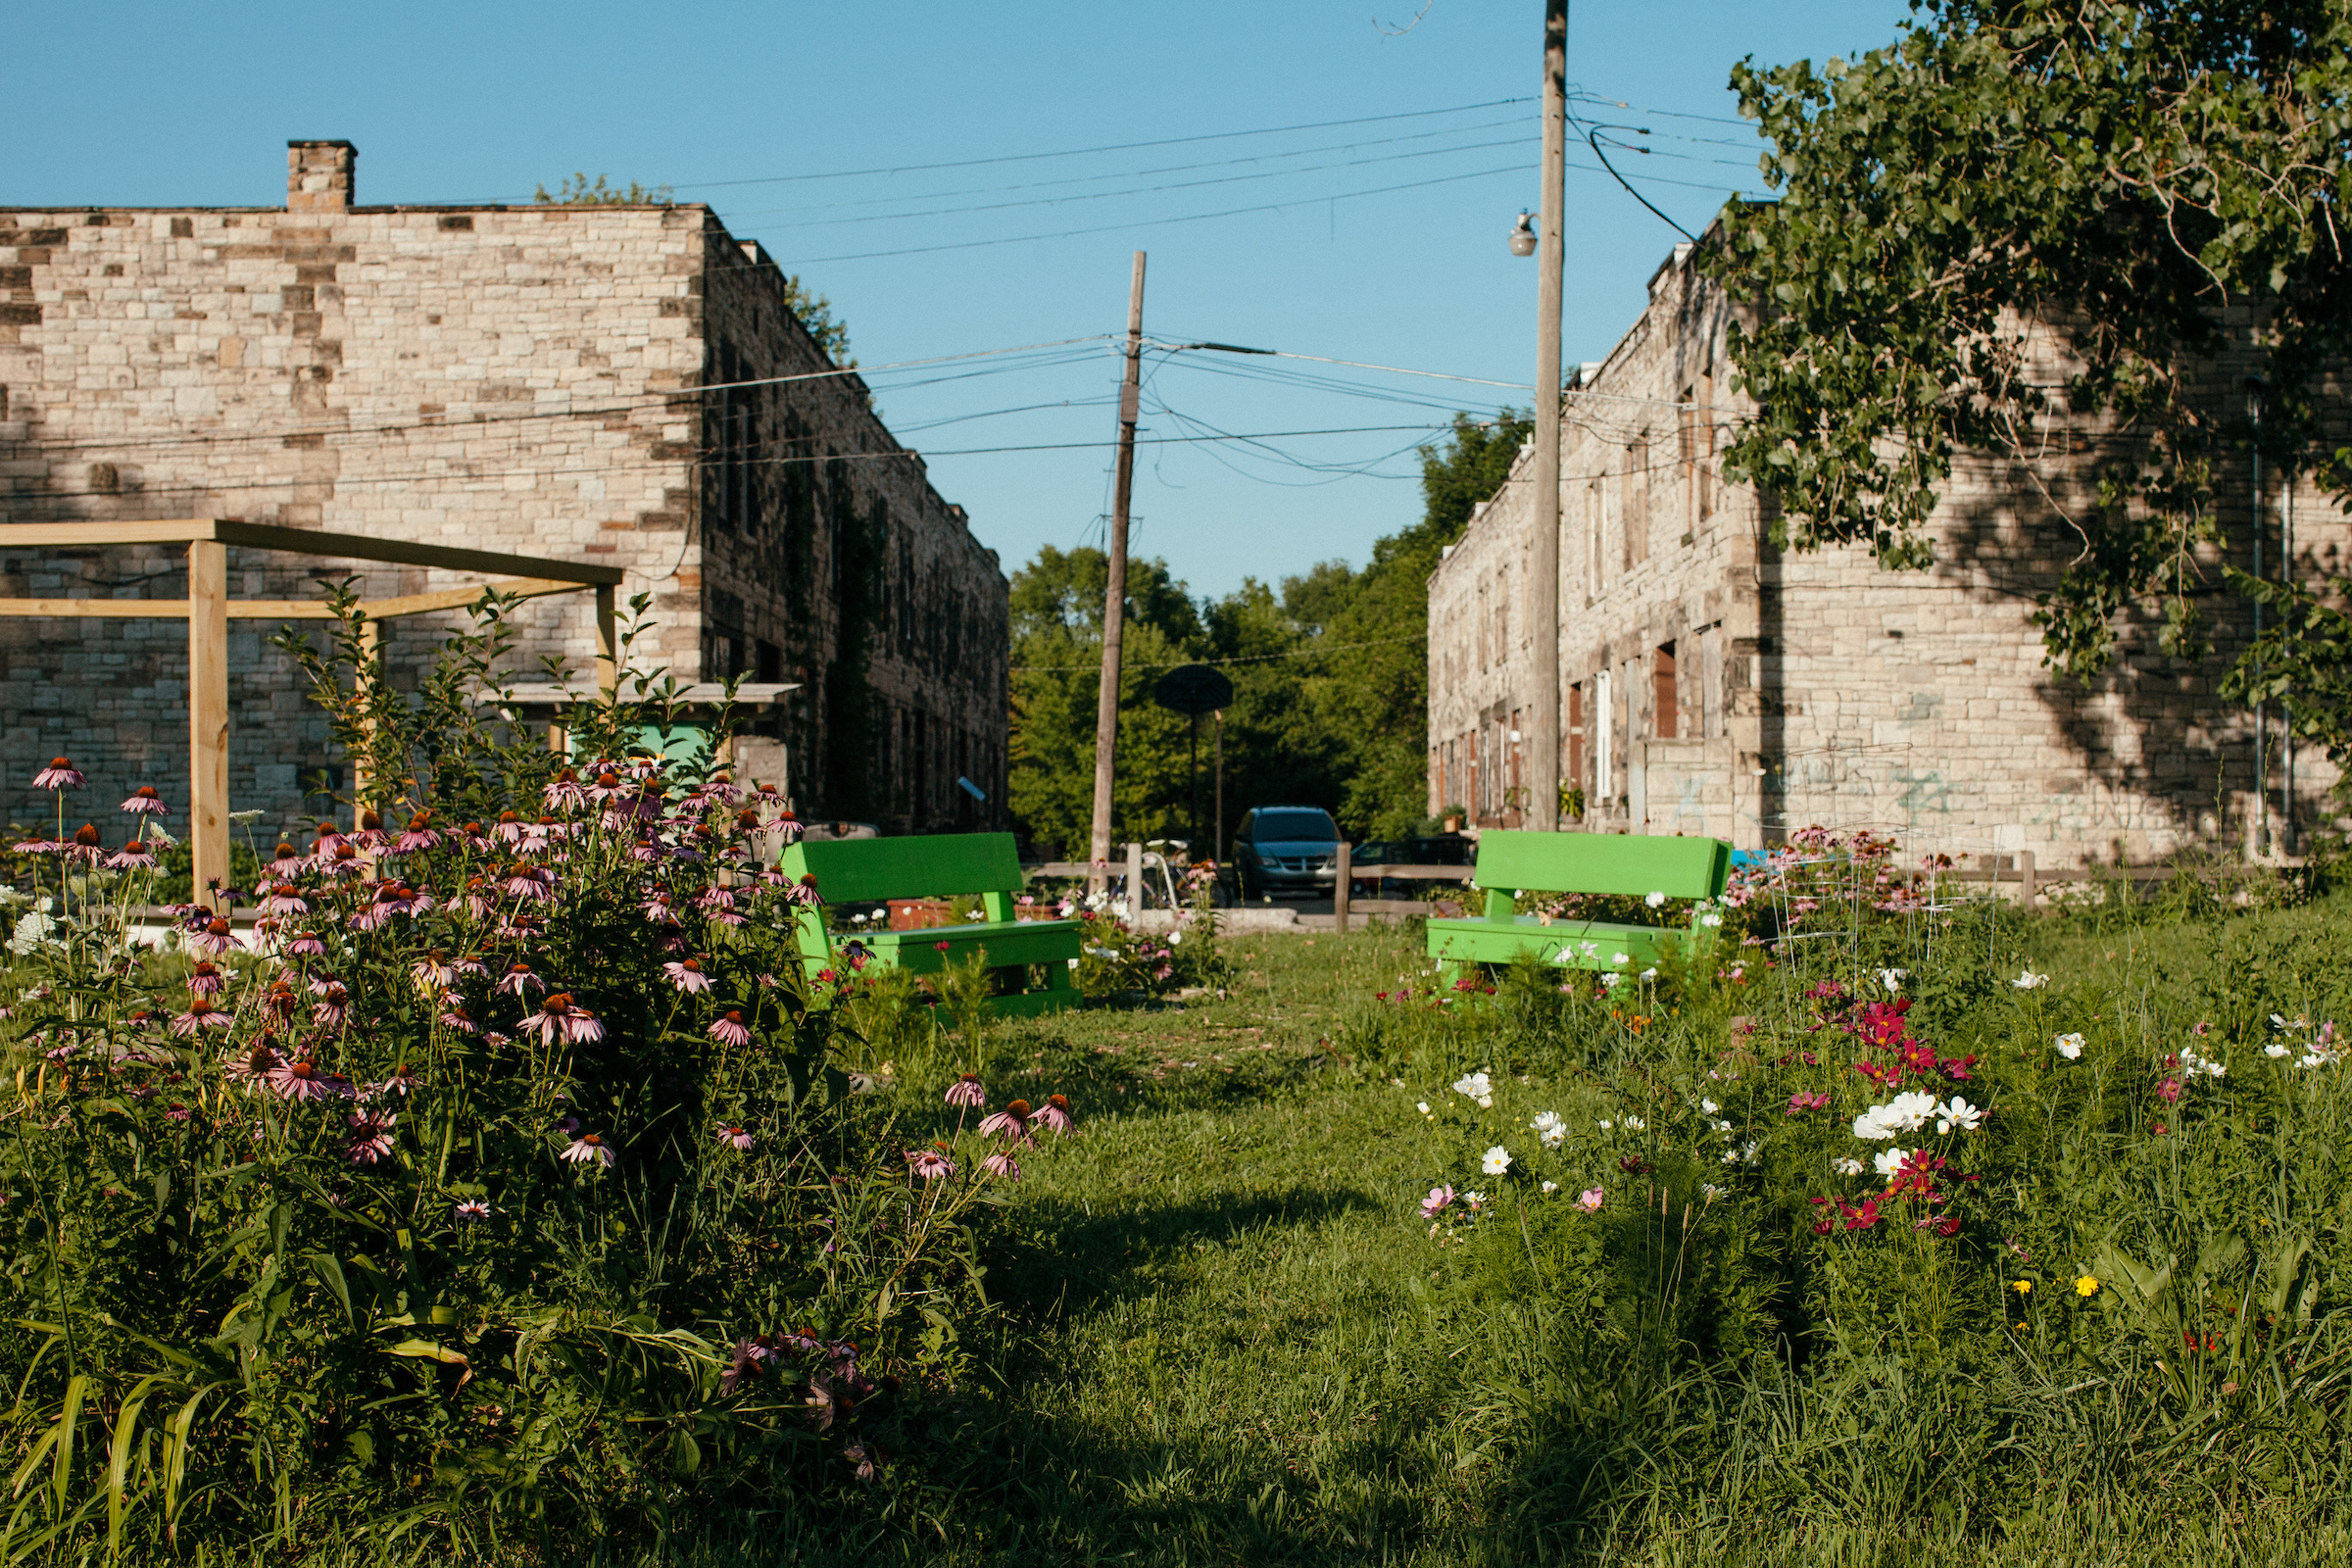 Weeds and flowers grow in front of two parallel brick row houses